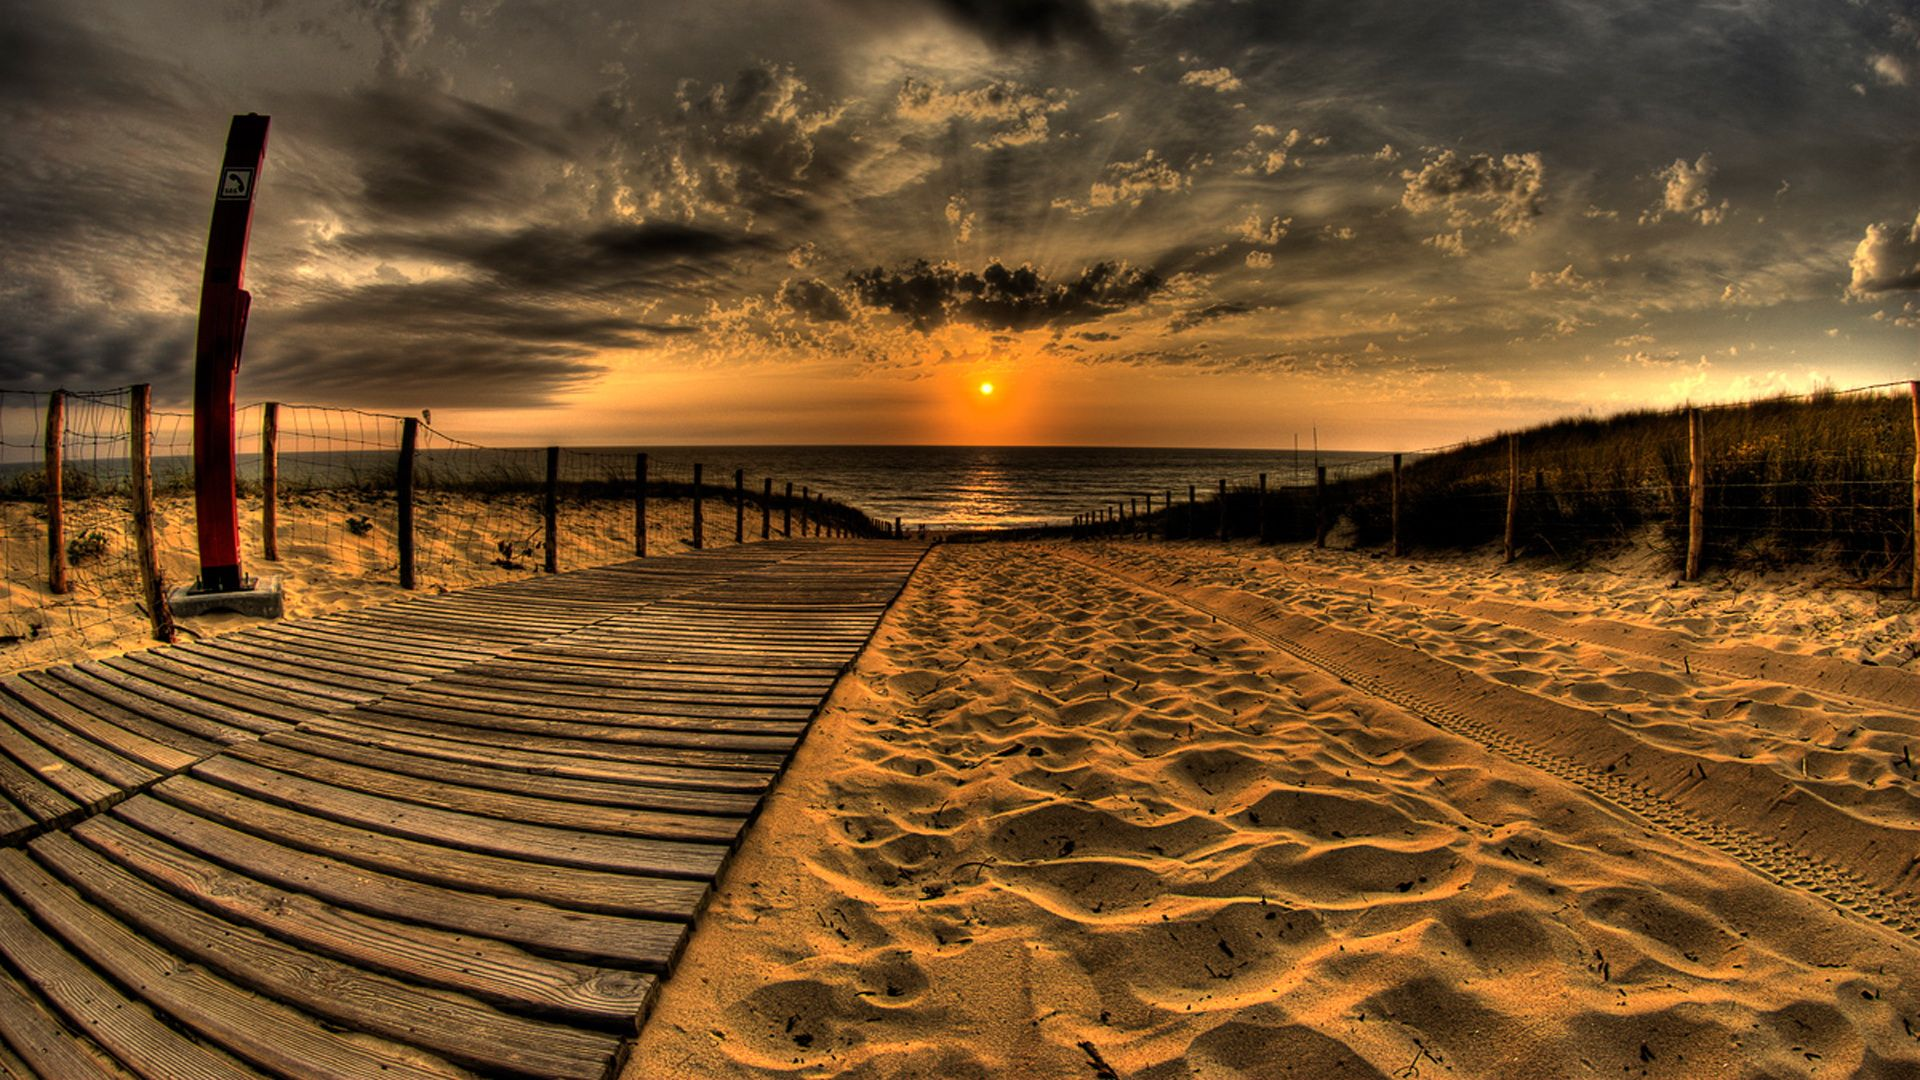 awesome photo check the latest awesome sunset at beach hd desktop wallpaper which